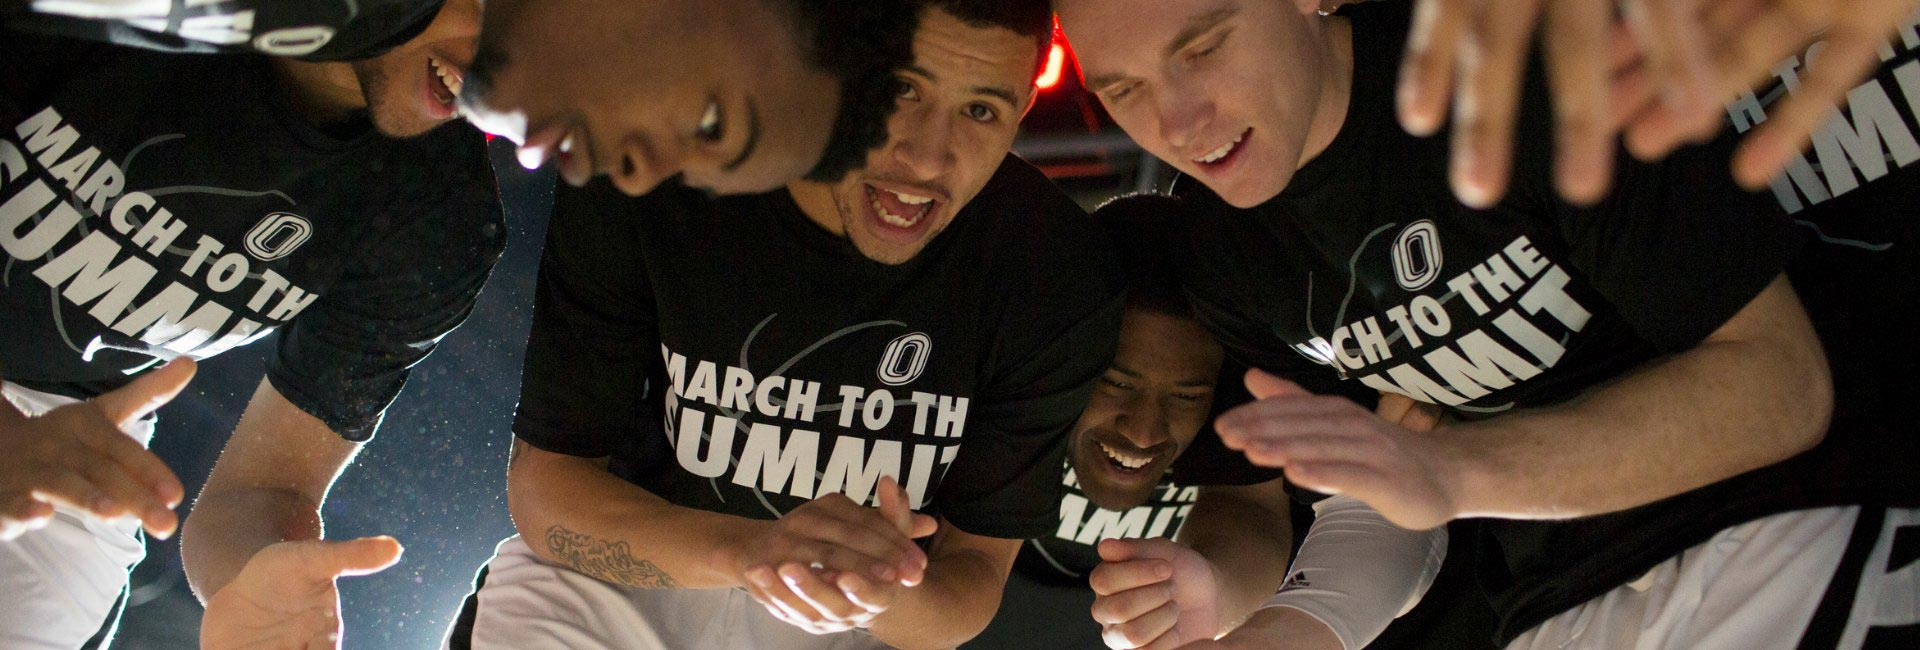 Omaha Joins Summit League Food Fight